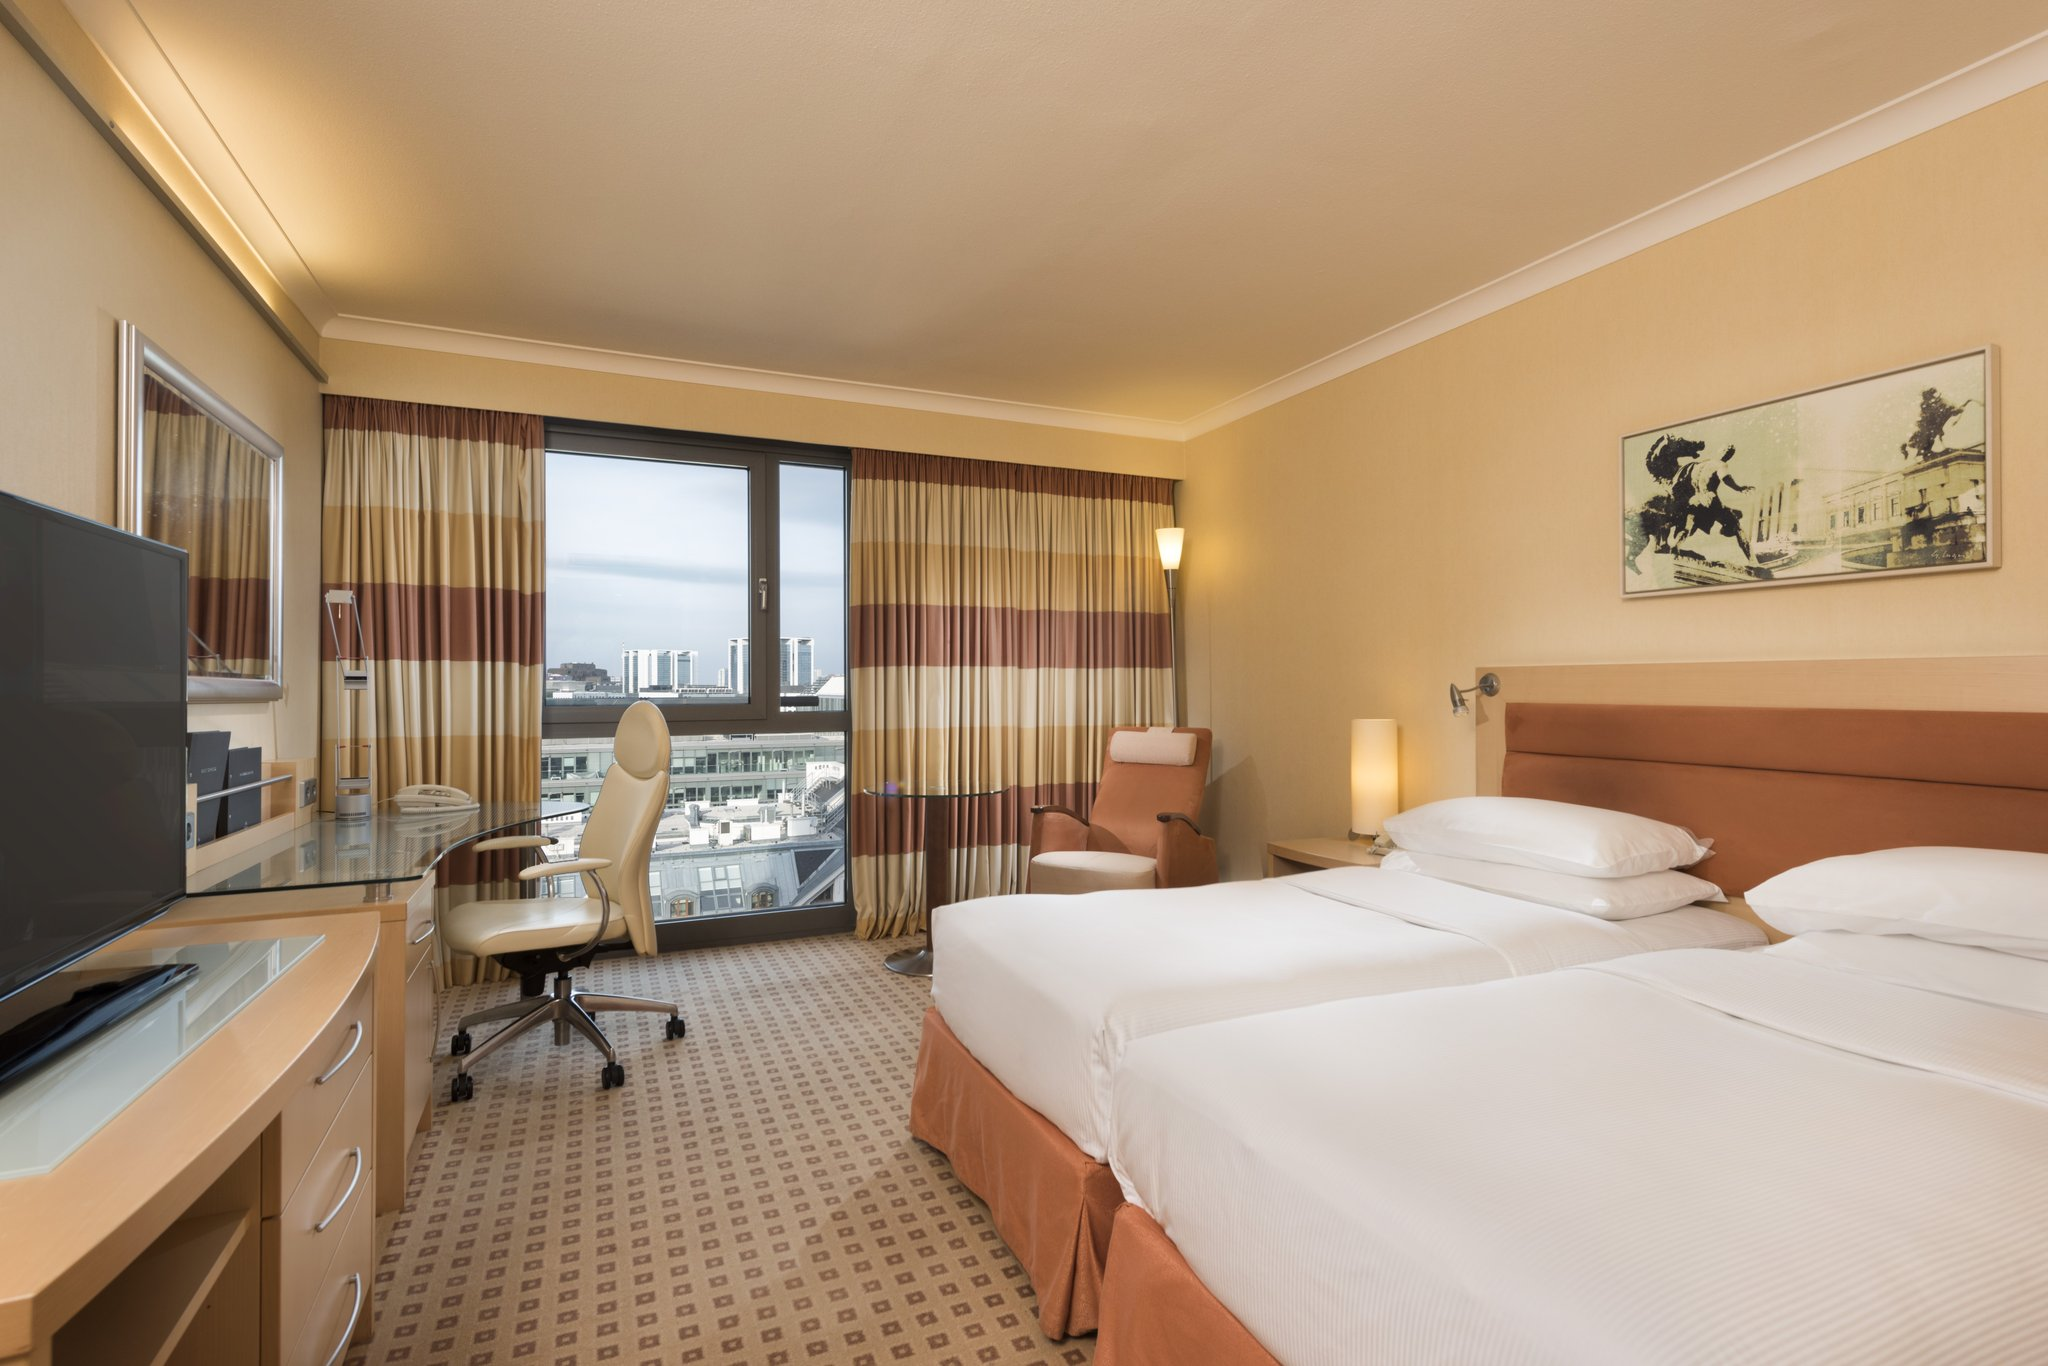 Meeting and event spaces at hilton austria hotels vienna and - Images